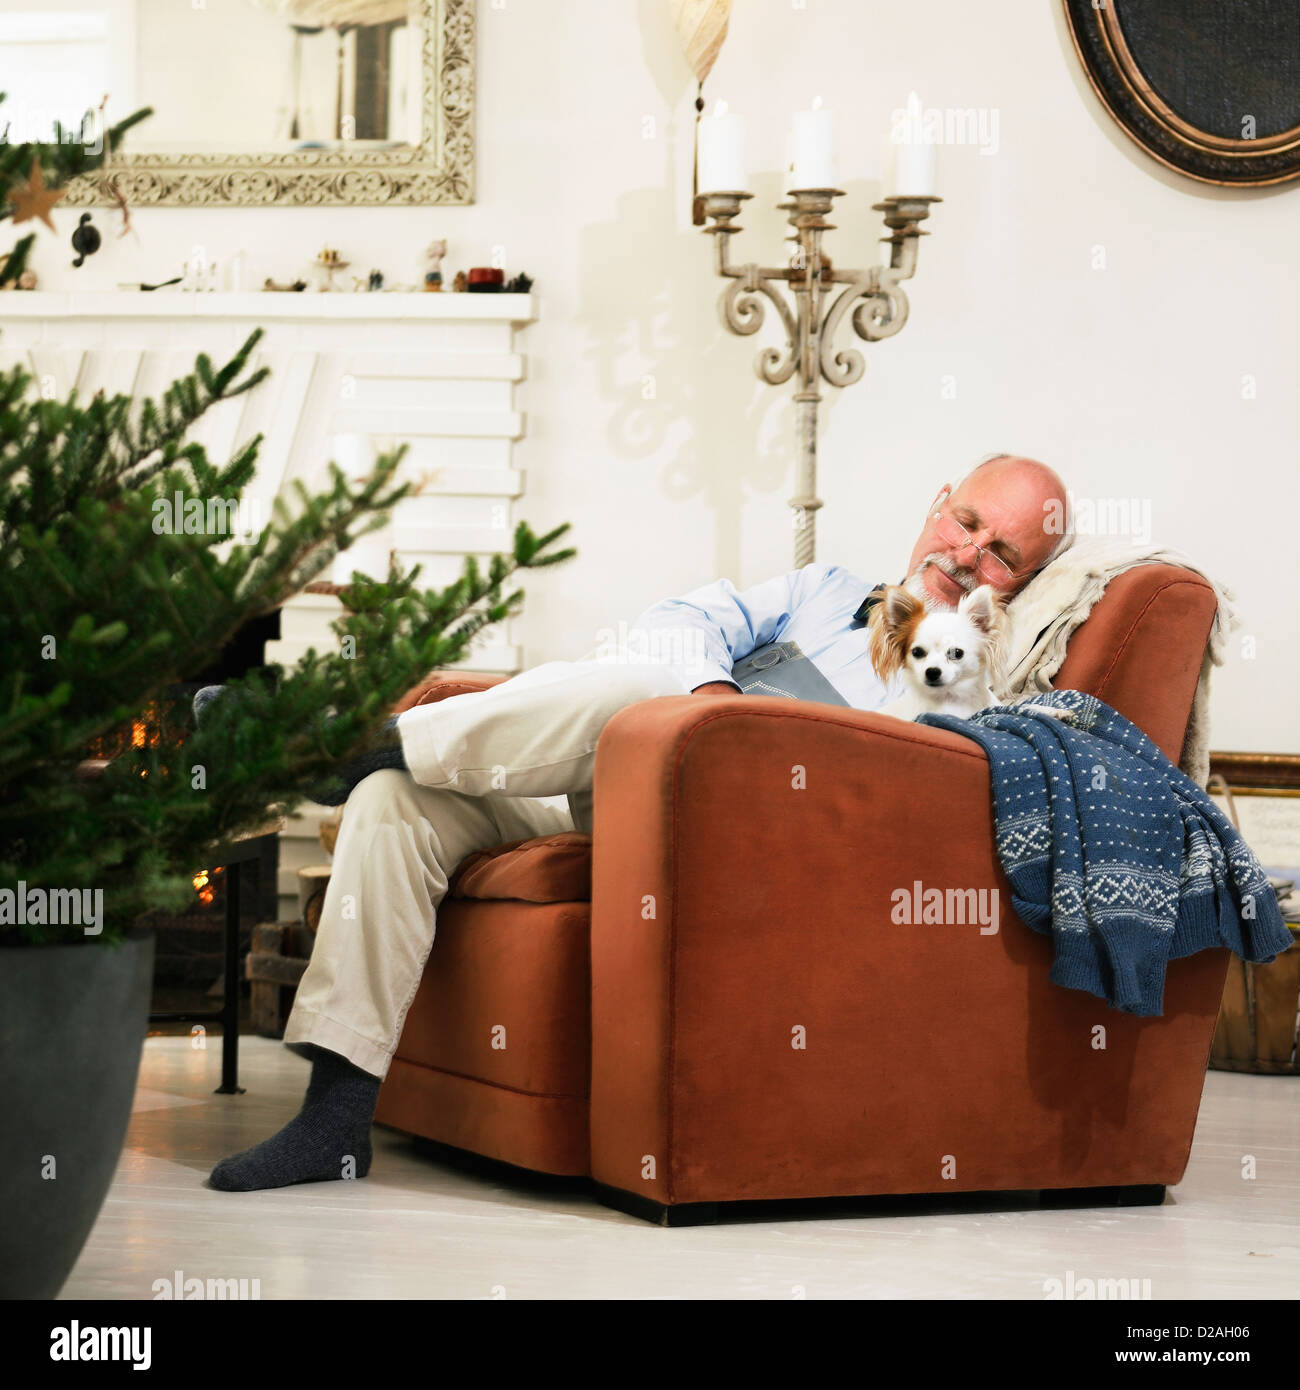 Older man sleeping by Christmas tree - Stock Image